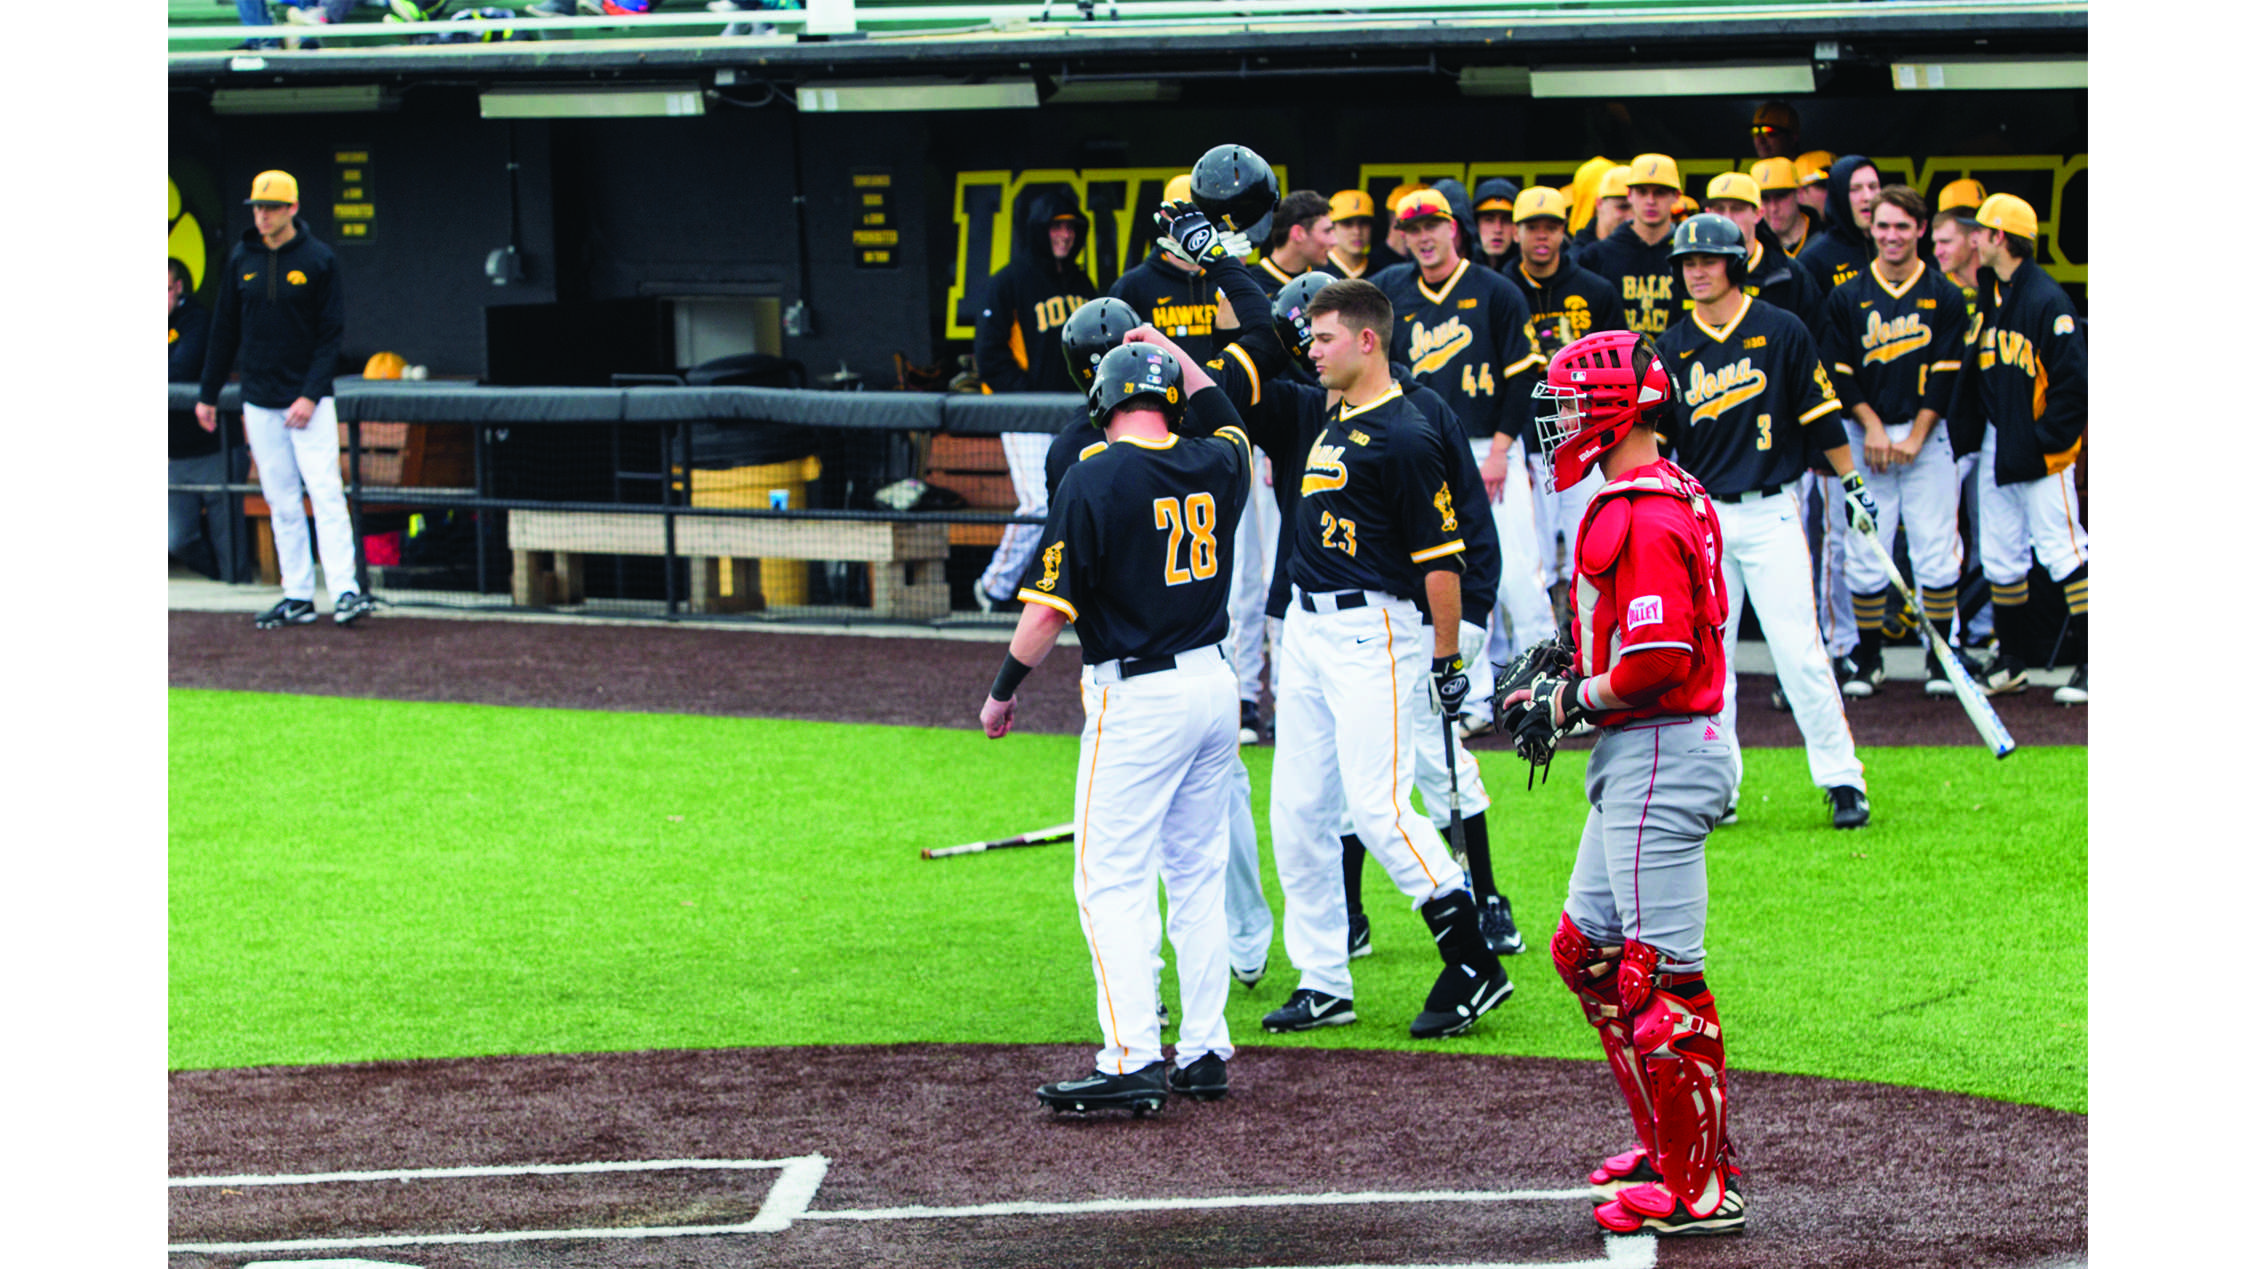 Hawkeye defeated Bradley 13-9 during men' baseball game between Iowa and Bradley at Duane Banks Field on Wednesday,  March 28, 2018. Hawkeye celebrated home-run. (Yue Zhang/The Daily Iowan)